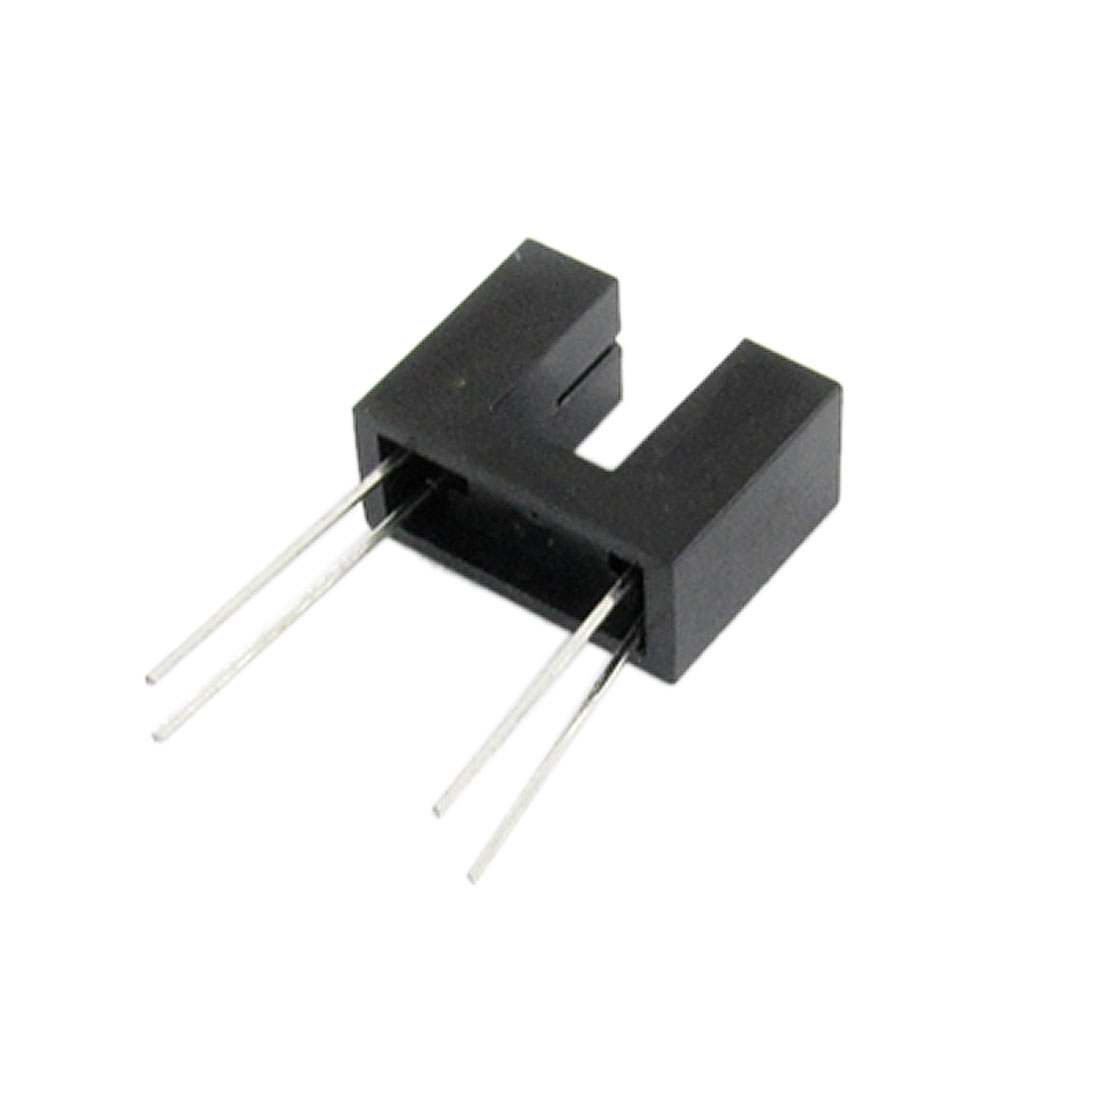 10-x-Optical-Slotted-Switch-Photo-Interrupter-5mm-Slot-Width